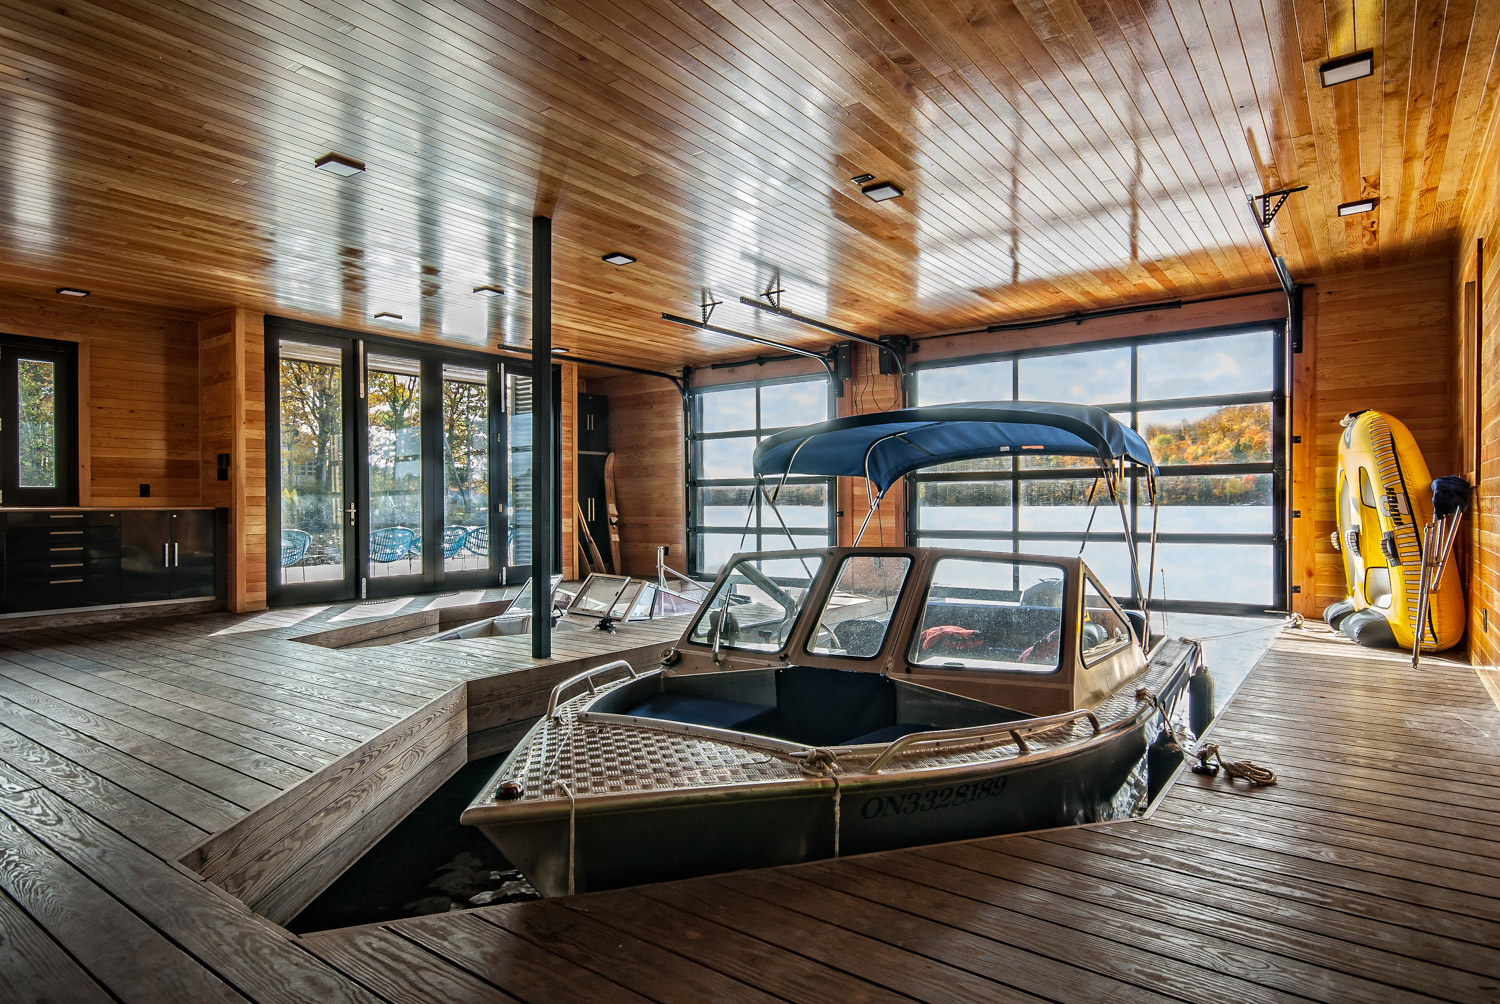 Interior of Muskoka Ontario boathouse with colour matched poplar on ceiling and walls and Kebony docks